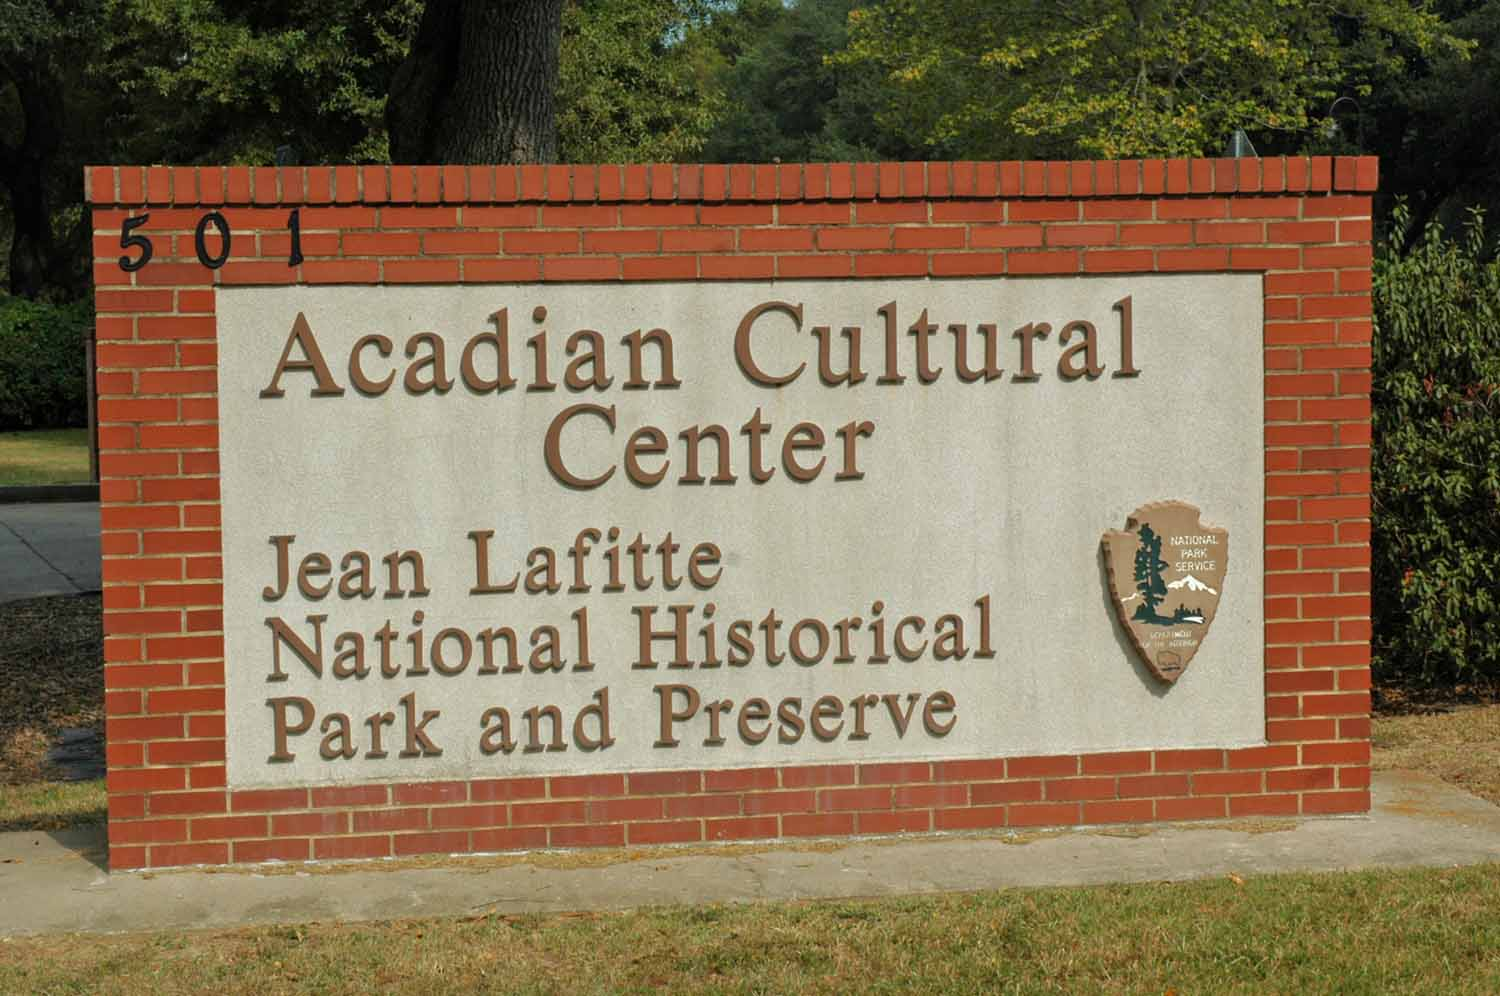 Louisiana and the Acadian Cultural Center - Next stop